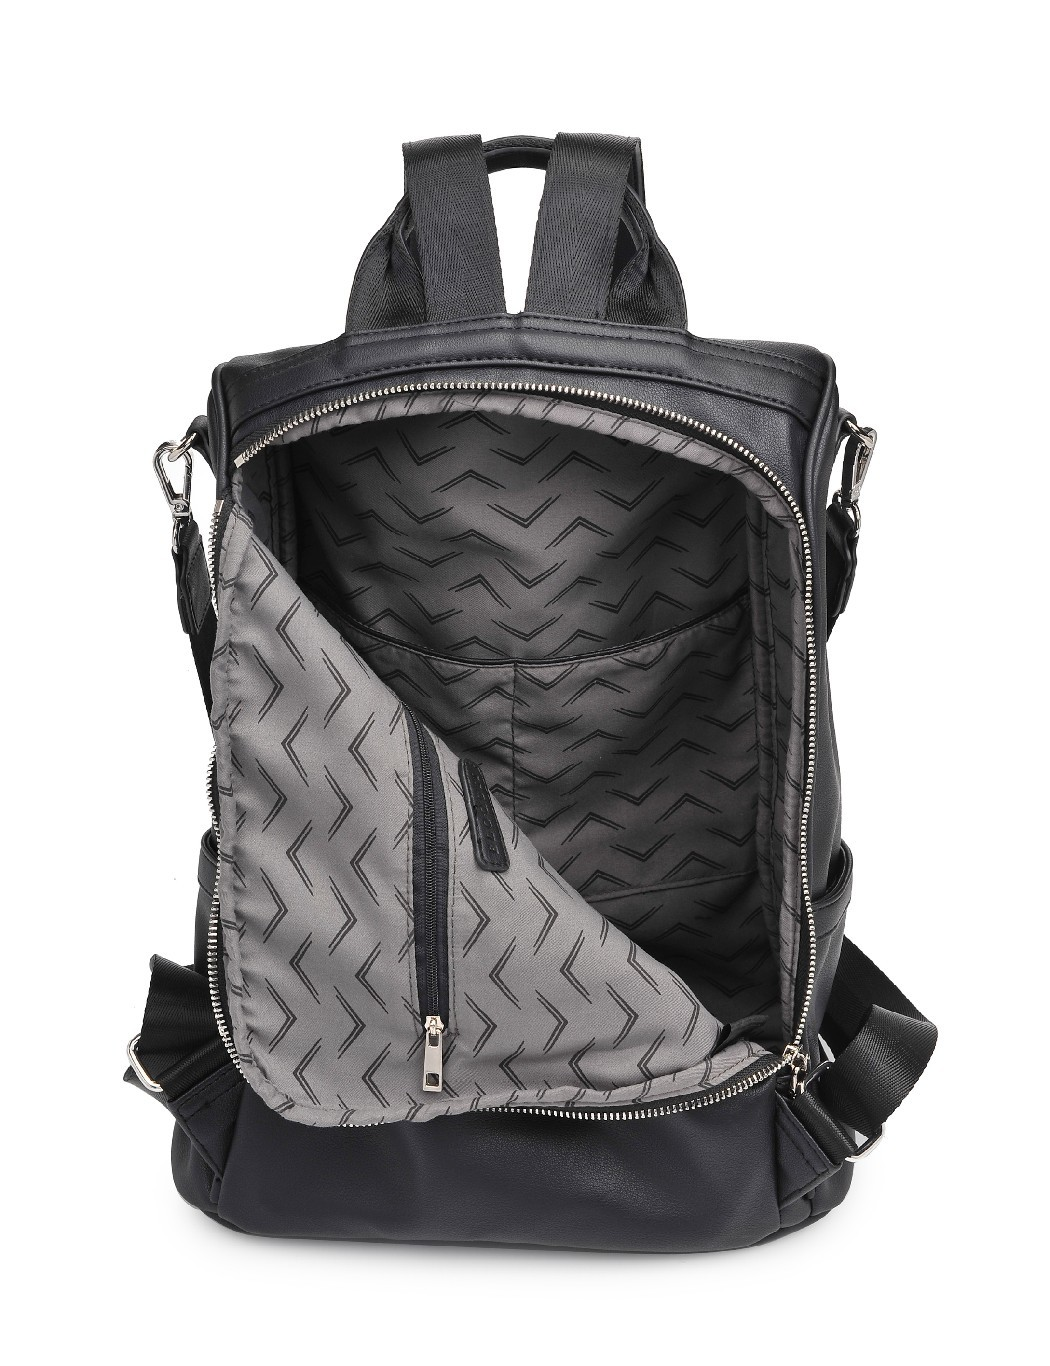 Convertible Backpack - Extended Length